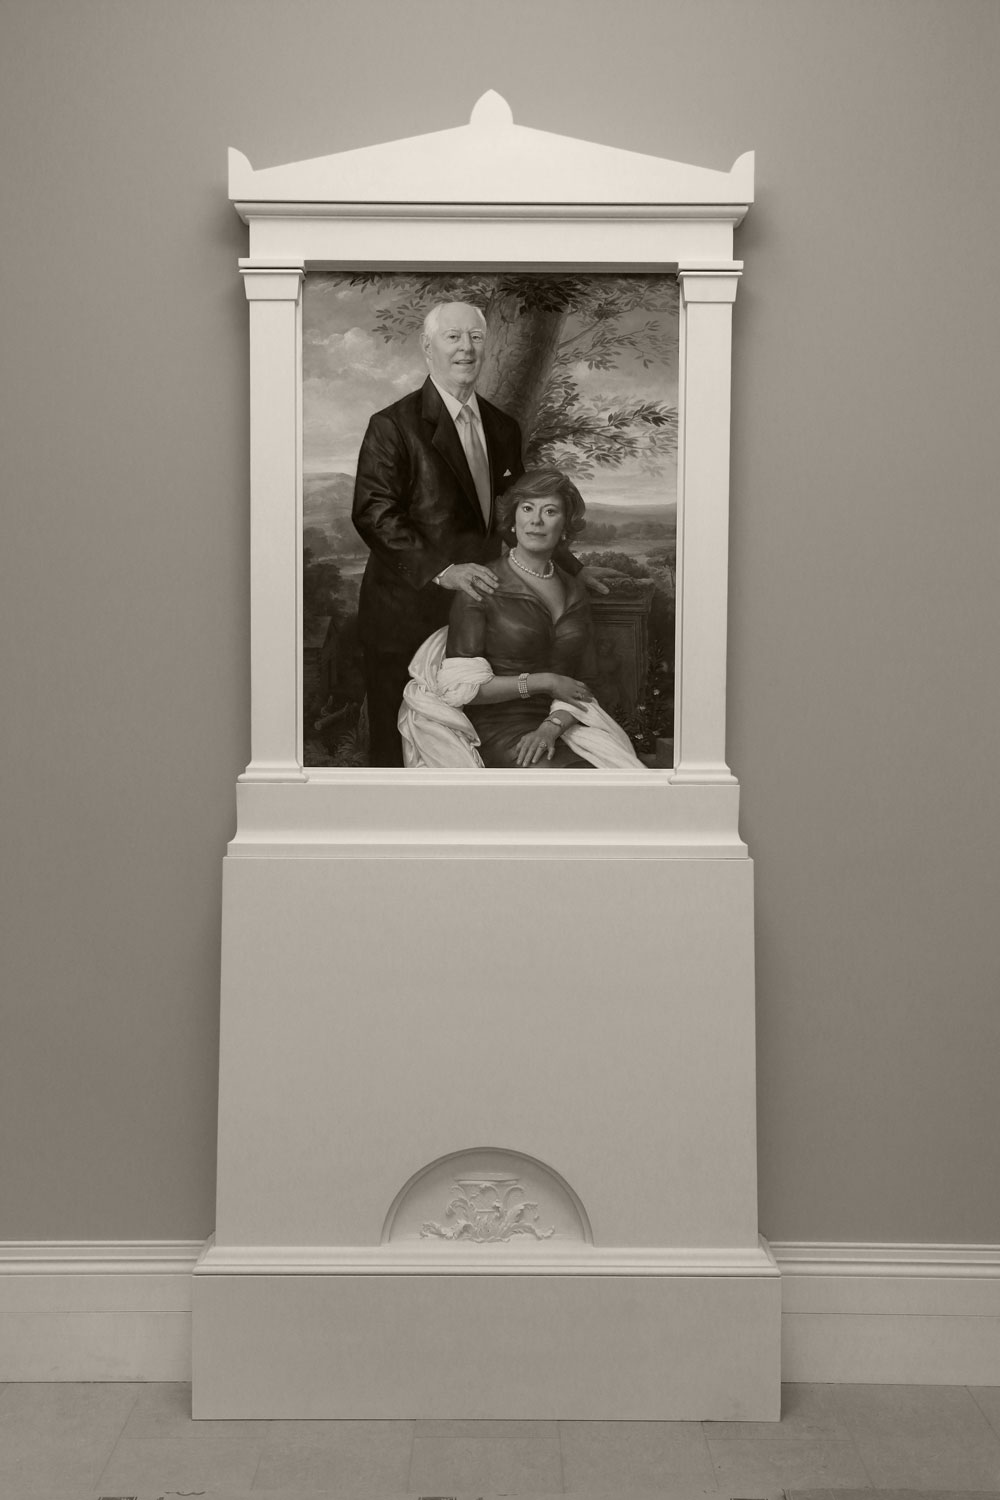 Matthew and Joyce Walsh  2018, Oil on linen, 42 x 32 inches. Collection of the University of Notre Dame · All rights reserved, used with permission.  Leonard Porter (in collaboration with John Simpson Architects )  Aedicule Frame with Bas relief Lunette  2018, Wood and Traditional Gesso, 108 x 48 1/2 inches. Collection of the University of Notre Dame · All rights reserved, used with permission.  Lunette by Emily Bedard. Fabrication by Rhonda Feinman.